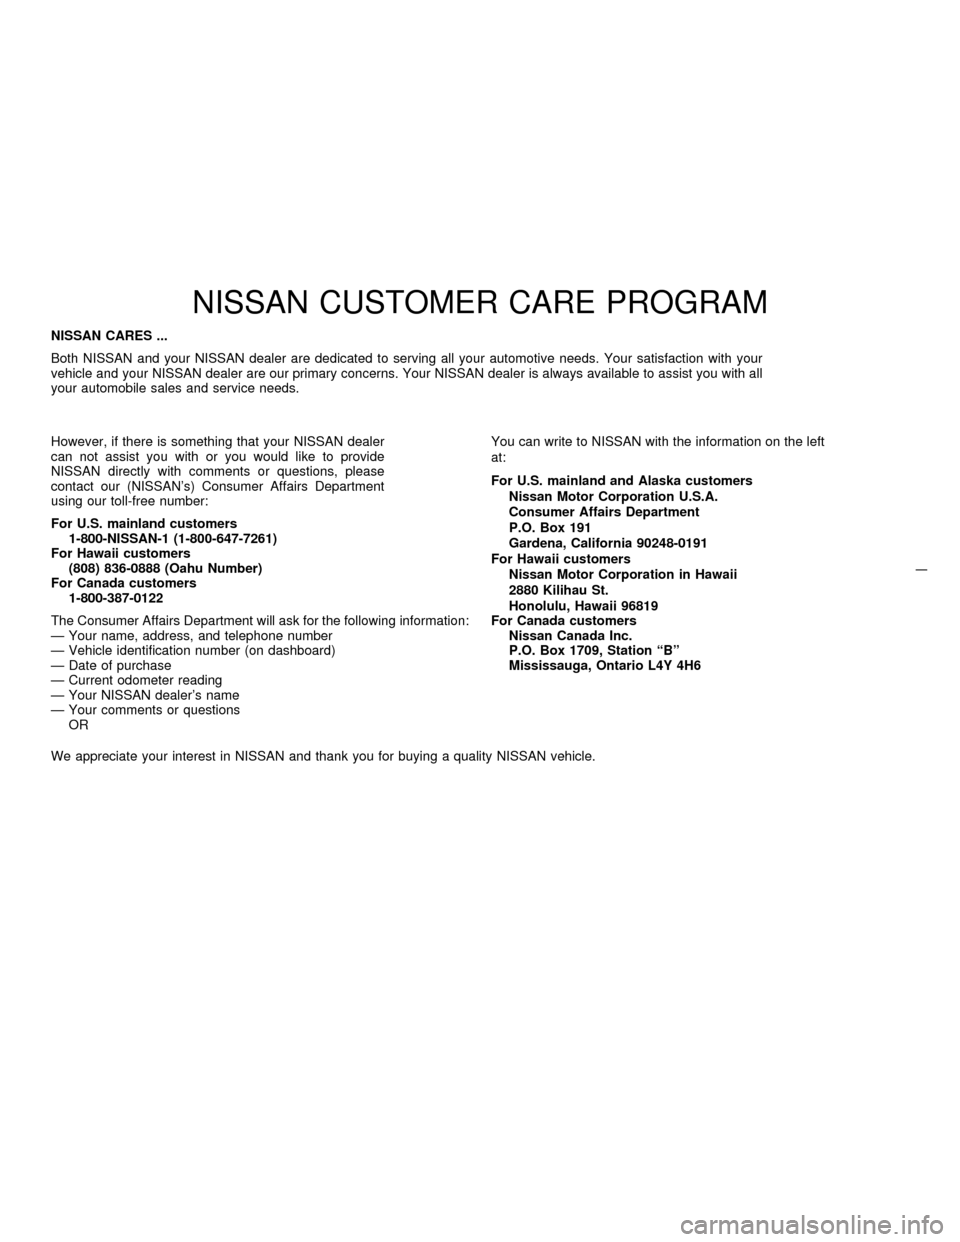 NISSAN PATHFINDER 1997 R50 / 2.G Owners Manual